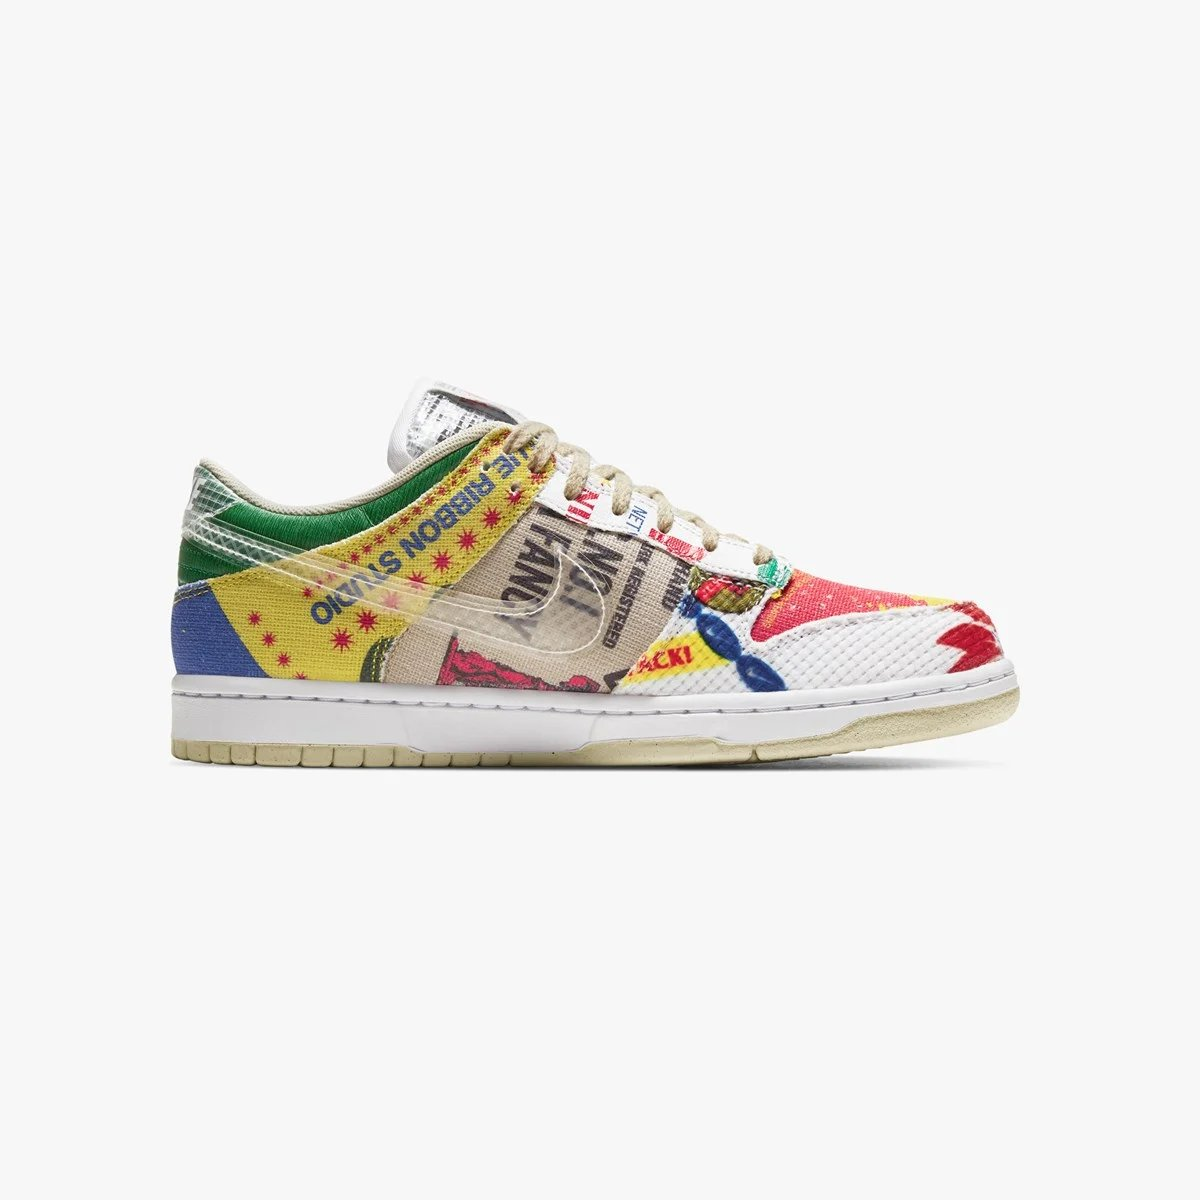 SNS online raffle live for the Nike Dunk Low SP